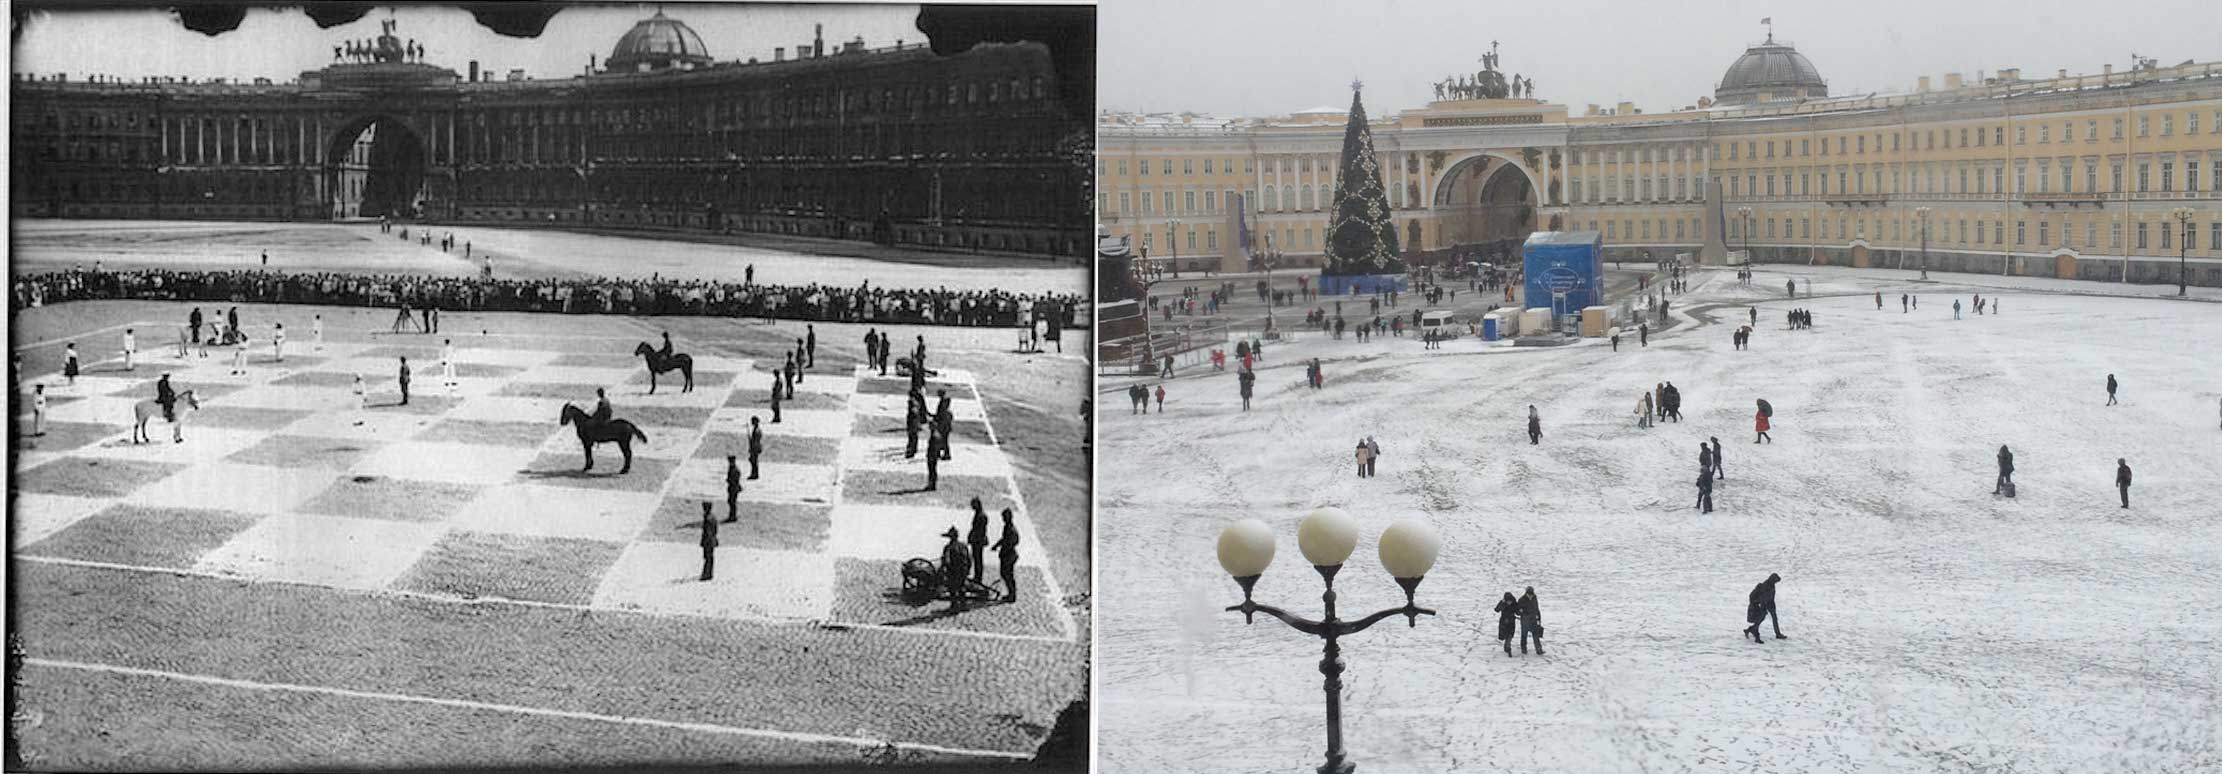 St. Petersburg - Then and Now